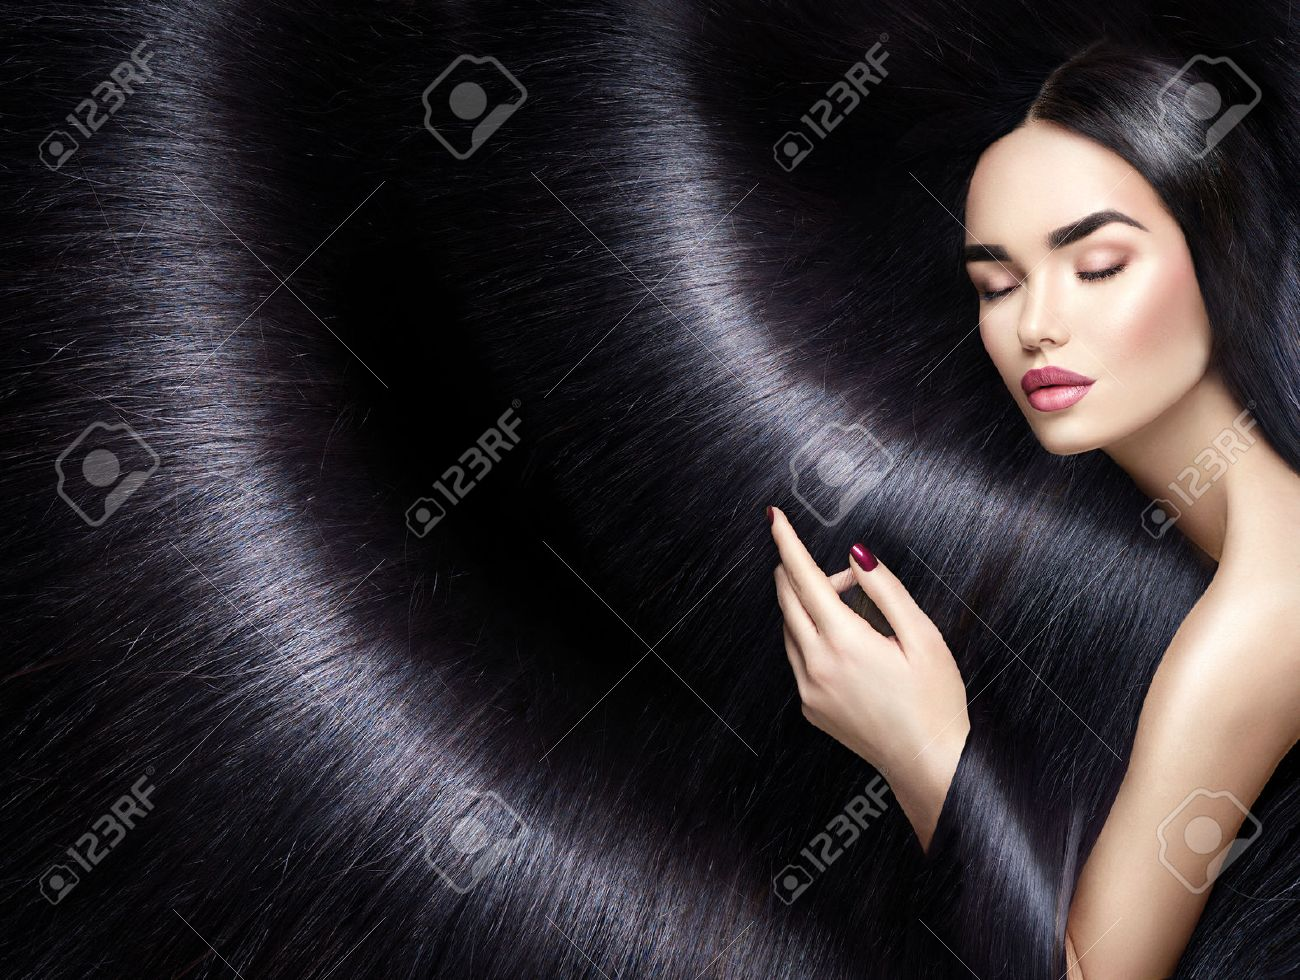 Long Hair Background Beauty Brunette Woman With Straight Black